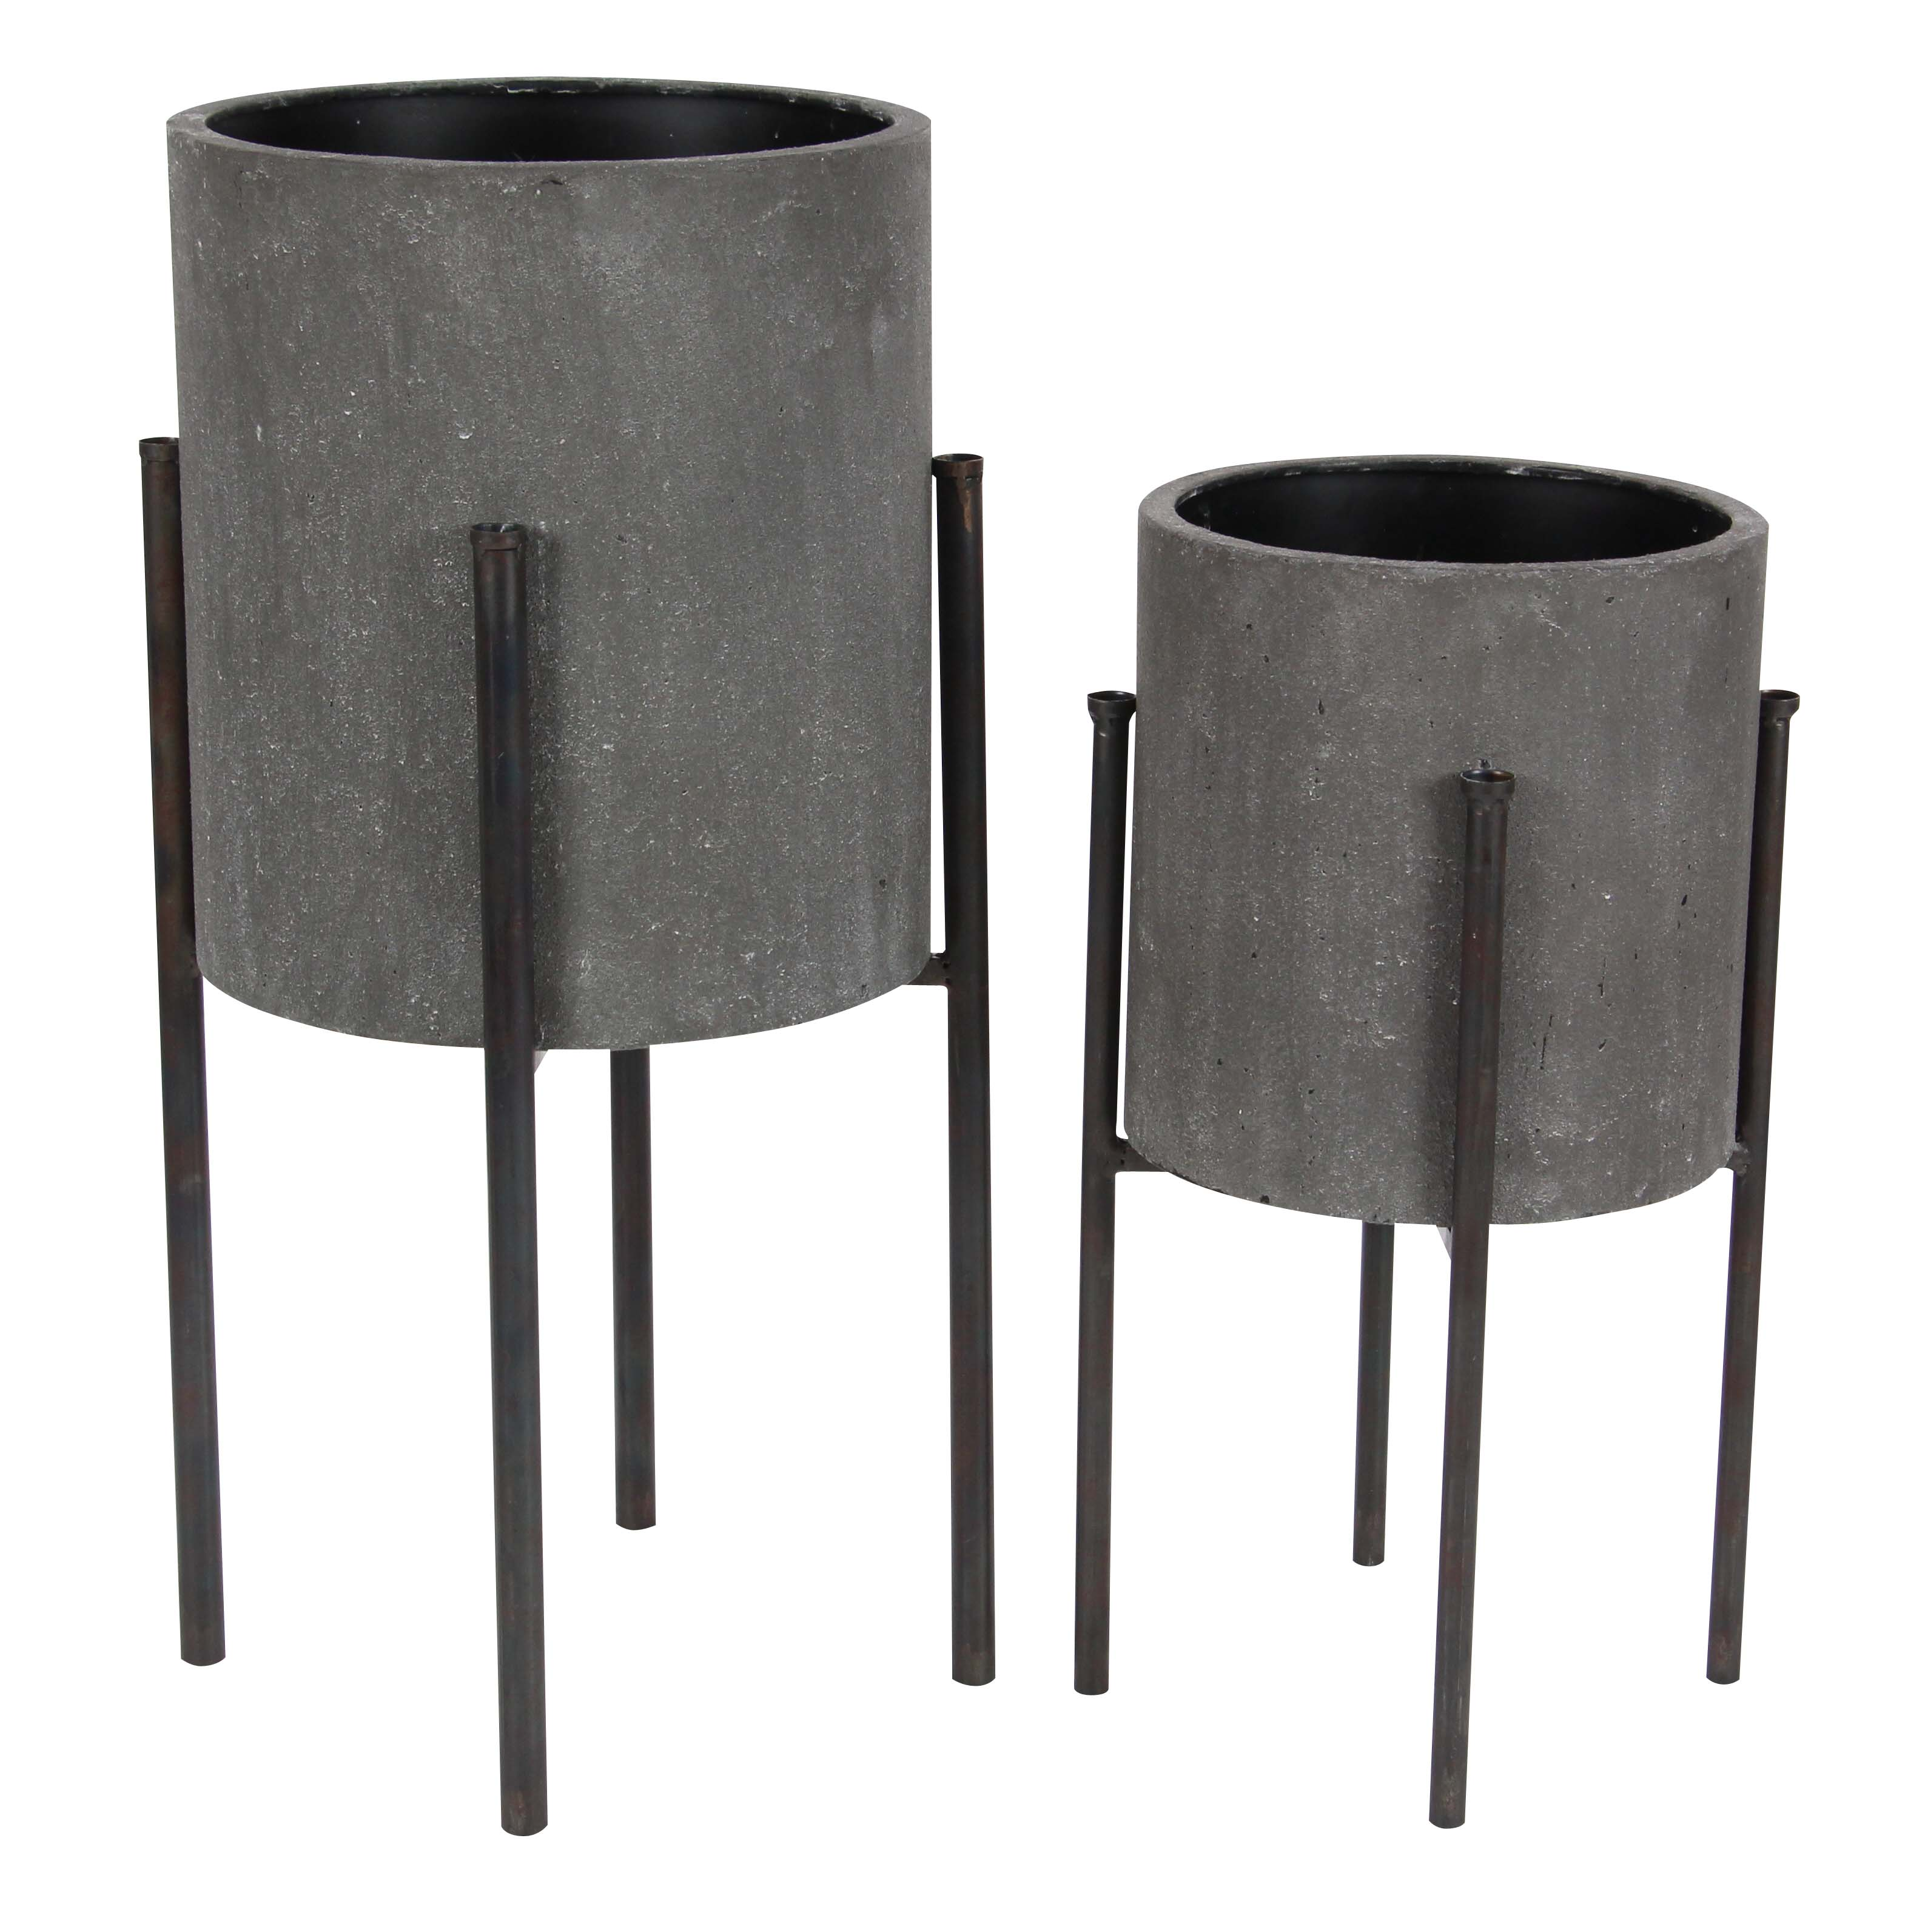 Decmode Set of Two - 19 and 23 Inch Industrial Iron Cylindrical Planters With Stand, Dark Gray